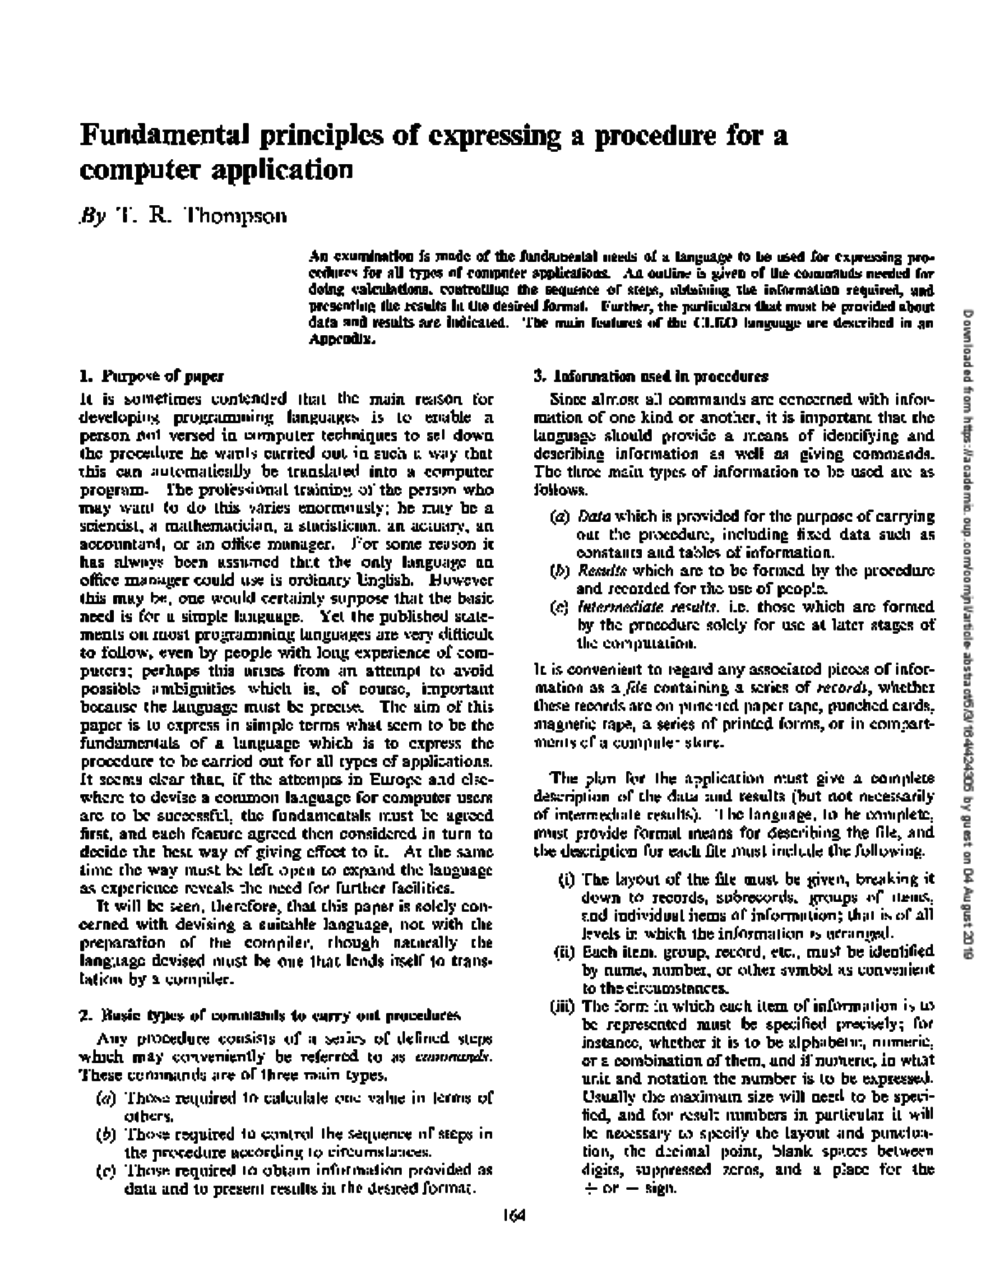 Article: Fundamental Principles of Expressing a Procedure for a Computer Application